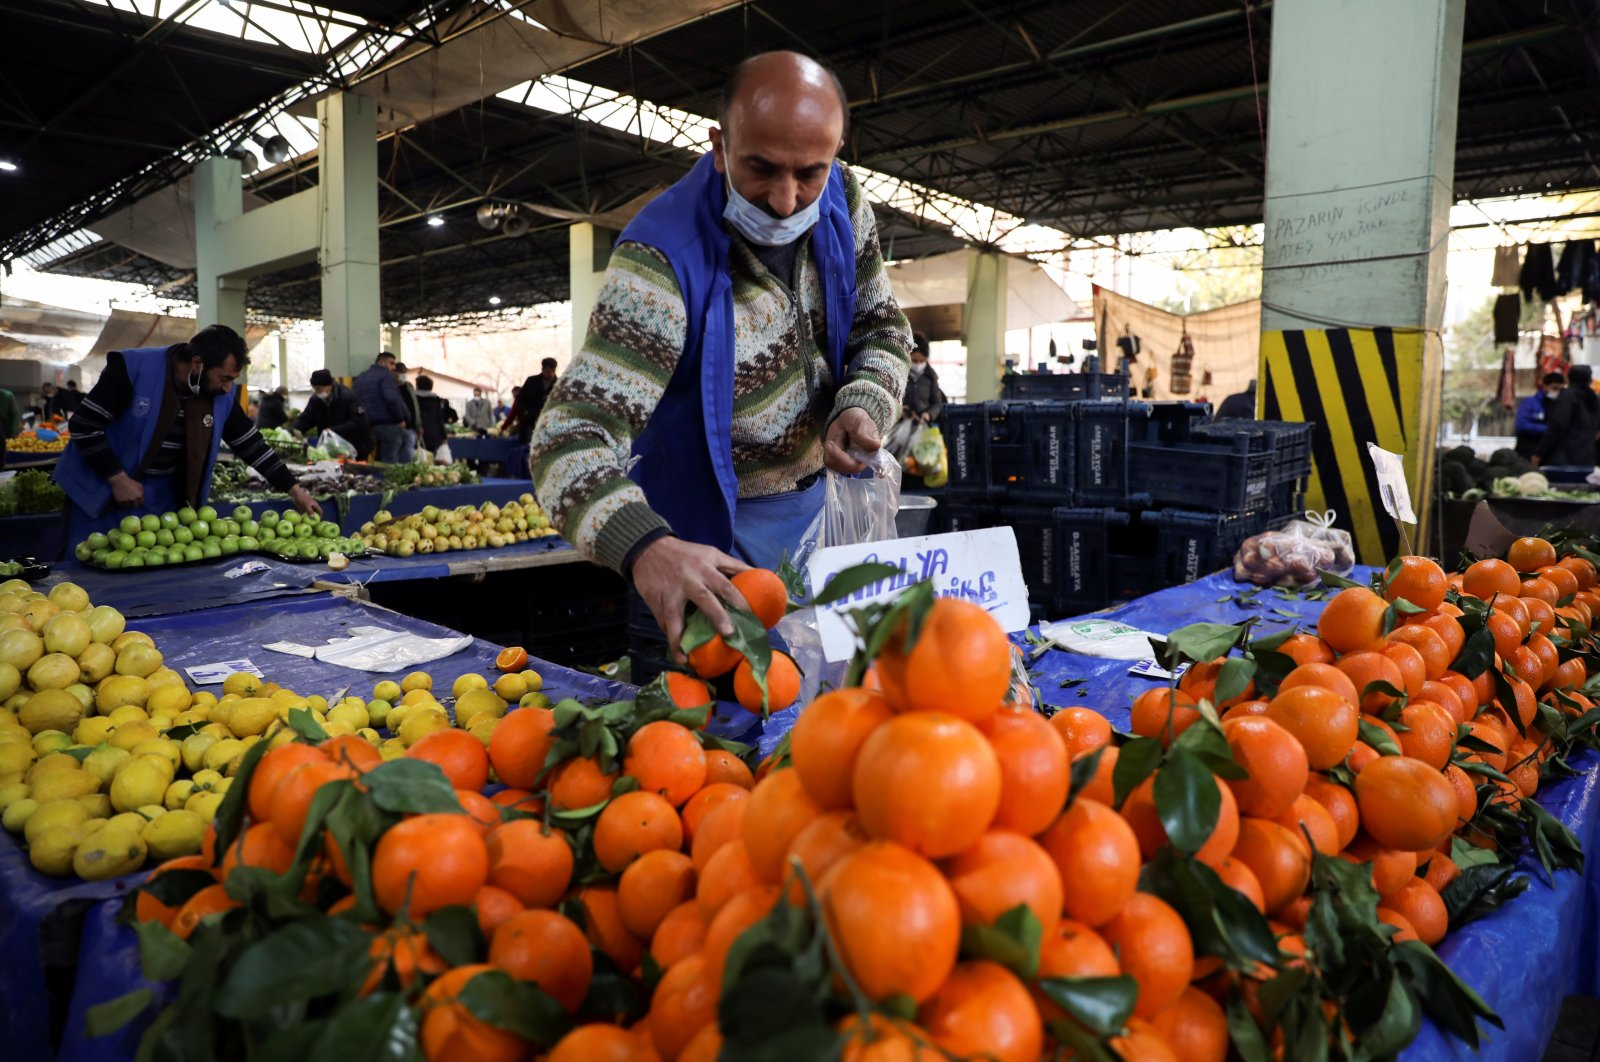 A vendor wearing a protective mask arranges fruit on his stall at a local market, amid the coronavirus disease (COVID-19) outbreak in Ankara, Feb. 24, 2021. (Reuters Photo)